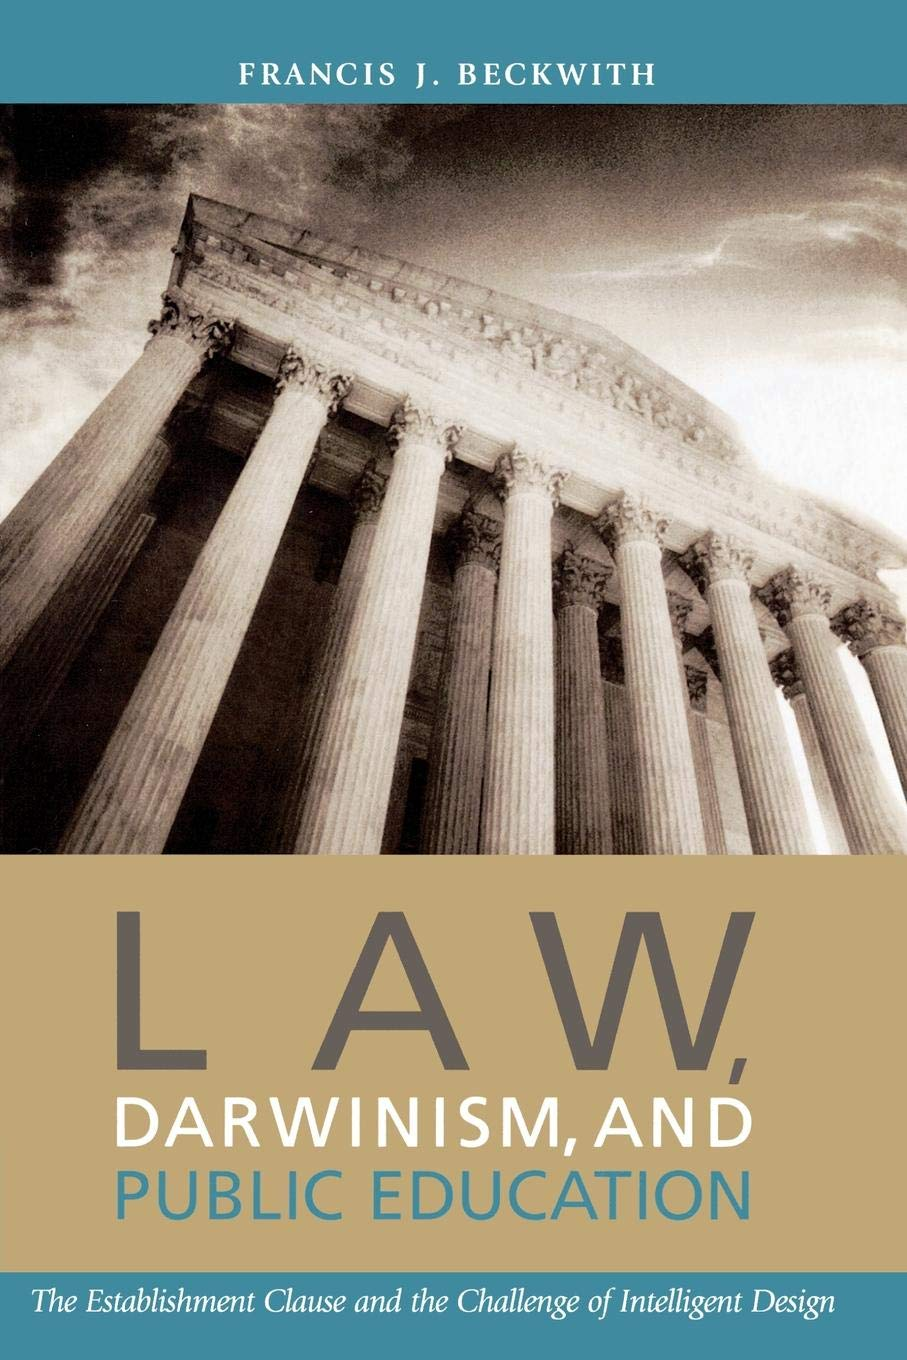 Read Online Law, Darwinism, and Public Education: The Establishment Clause and the Challenge of Intelligent Design ebook